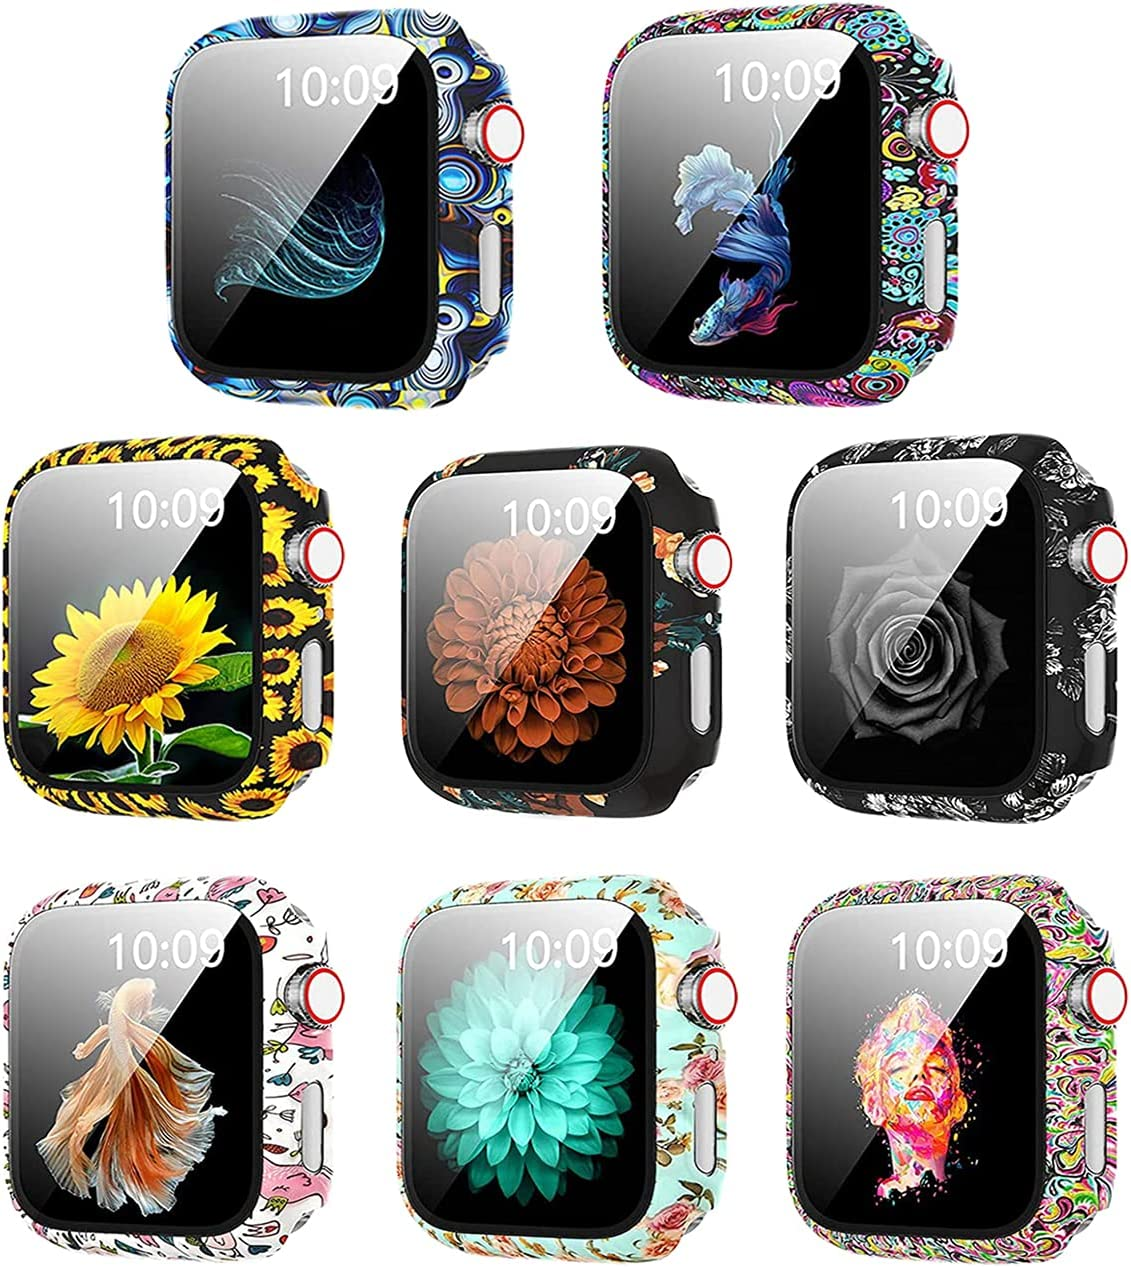 8 Pack Hard PC Flowers Case with Tempered Glass Smartwatch Screen Protectors Compatible with Apple Watch SE Series 6 5 4 3 2 44mm 40mm 42/38mm Full Protective Cover for Women Girl (8Pack, 40mm)